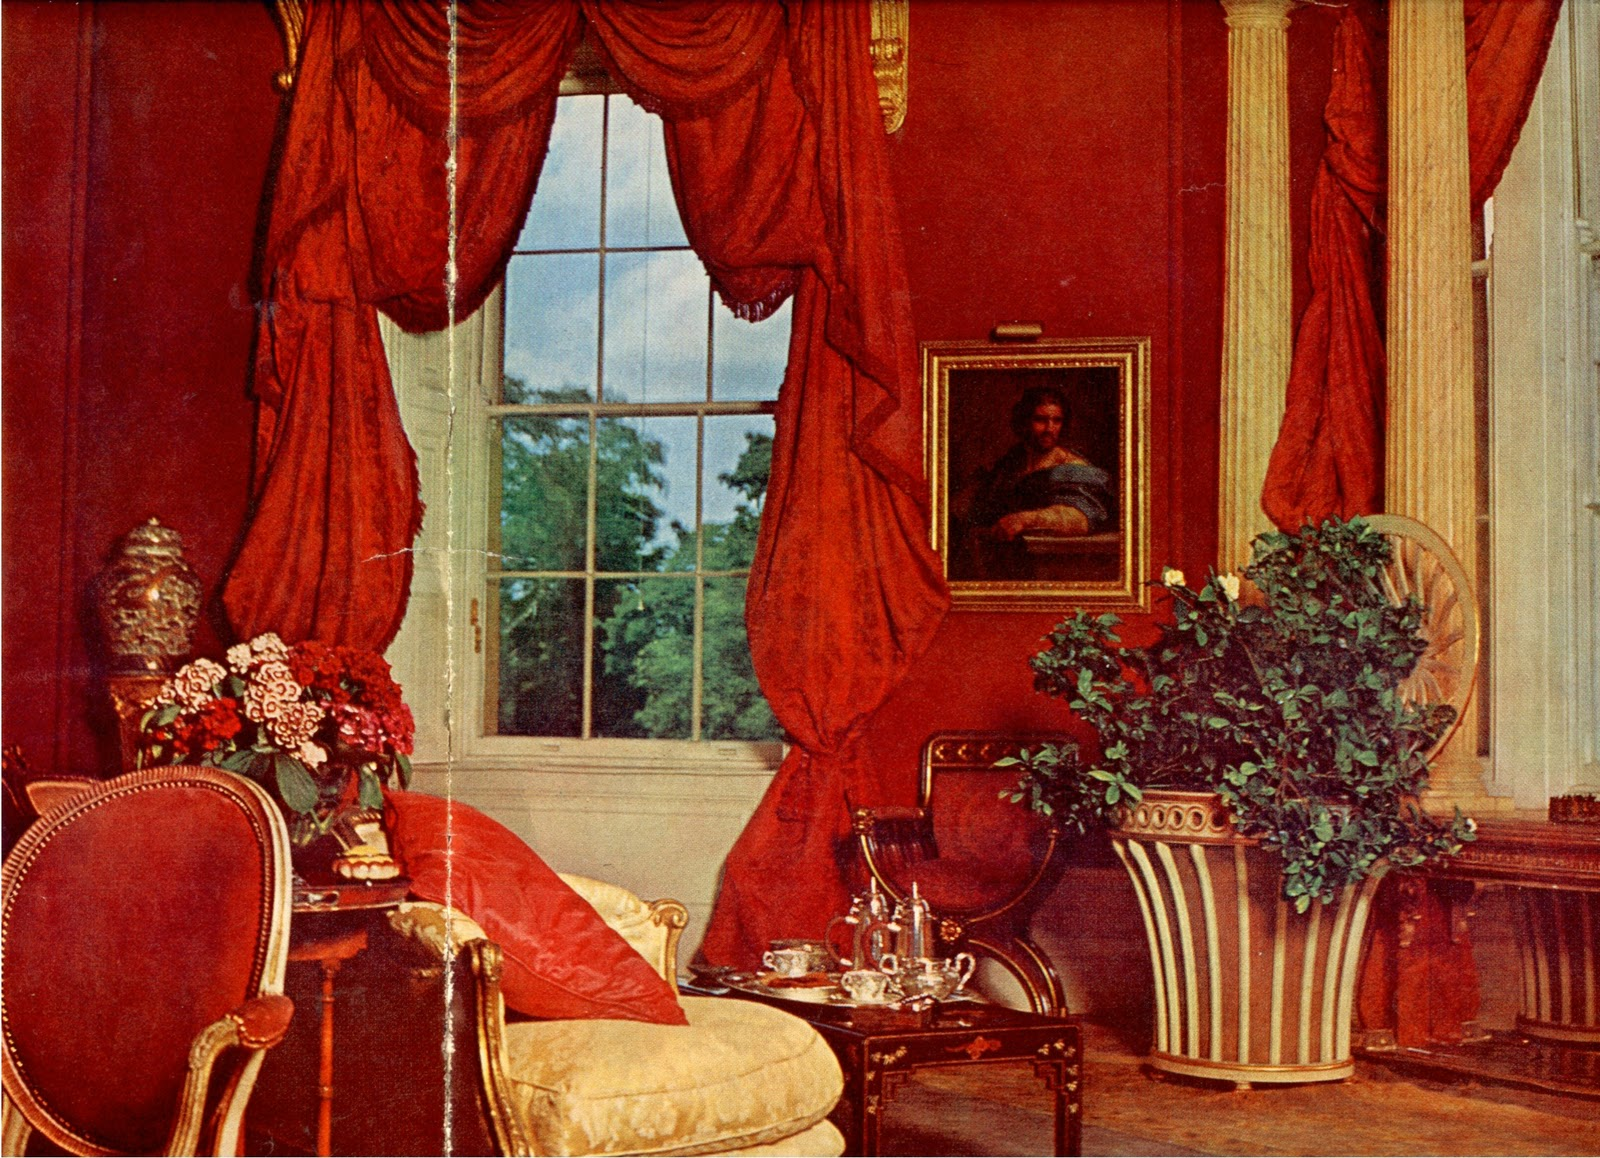 little augury in praise of the Red Room  Lesley Blanch